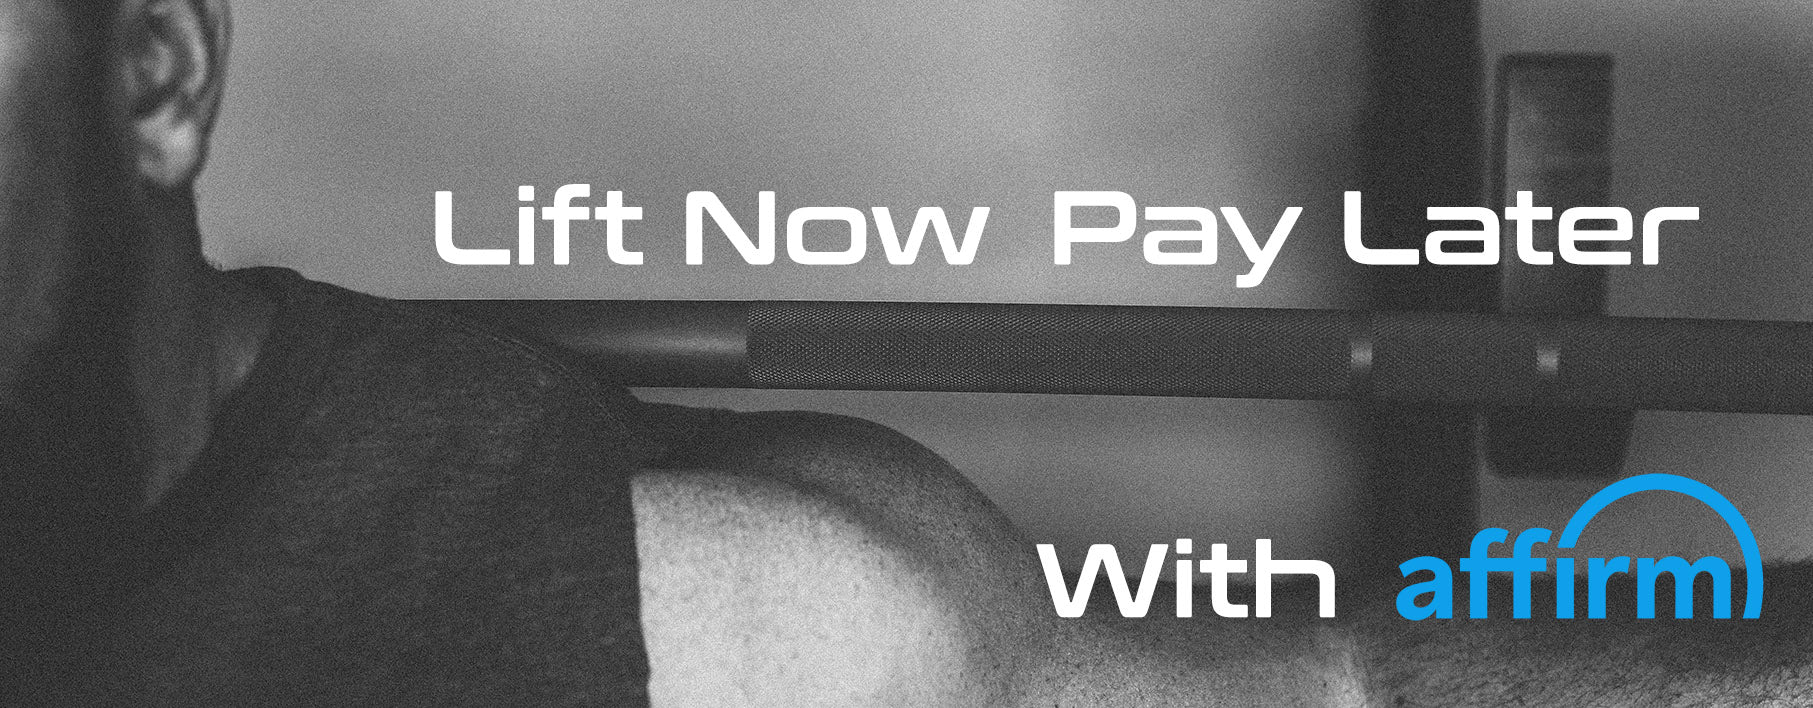 Lift Now, Pay Later